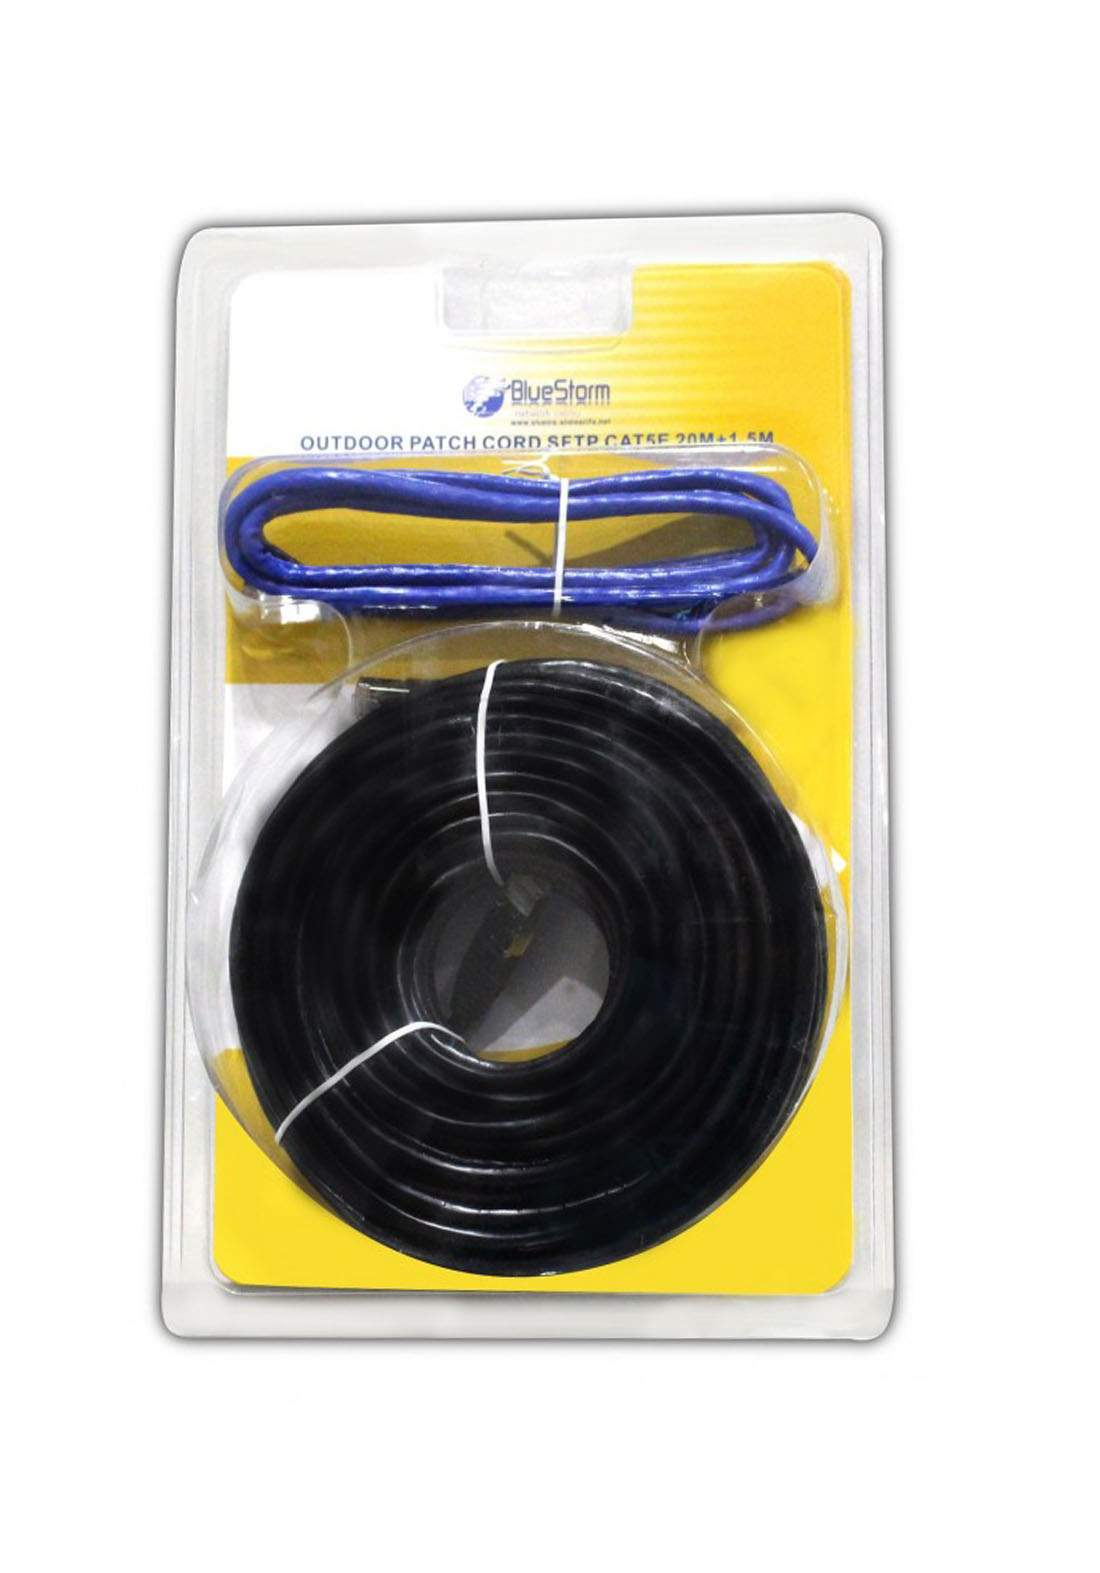 Blue Storm Cable for Internet Devices 20 meter - Black